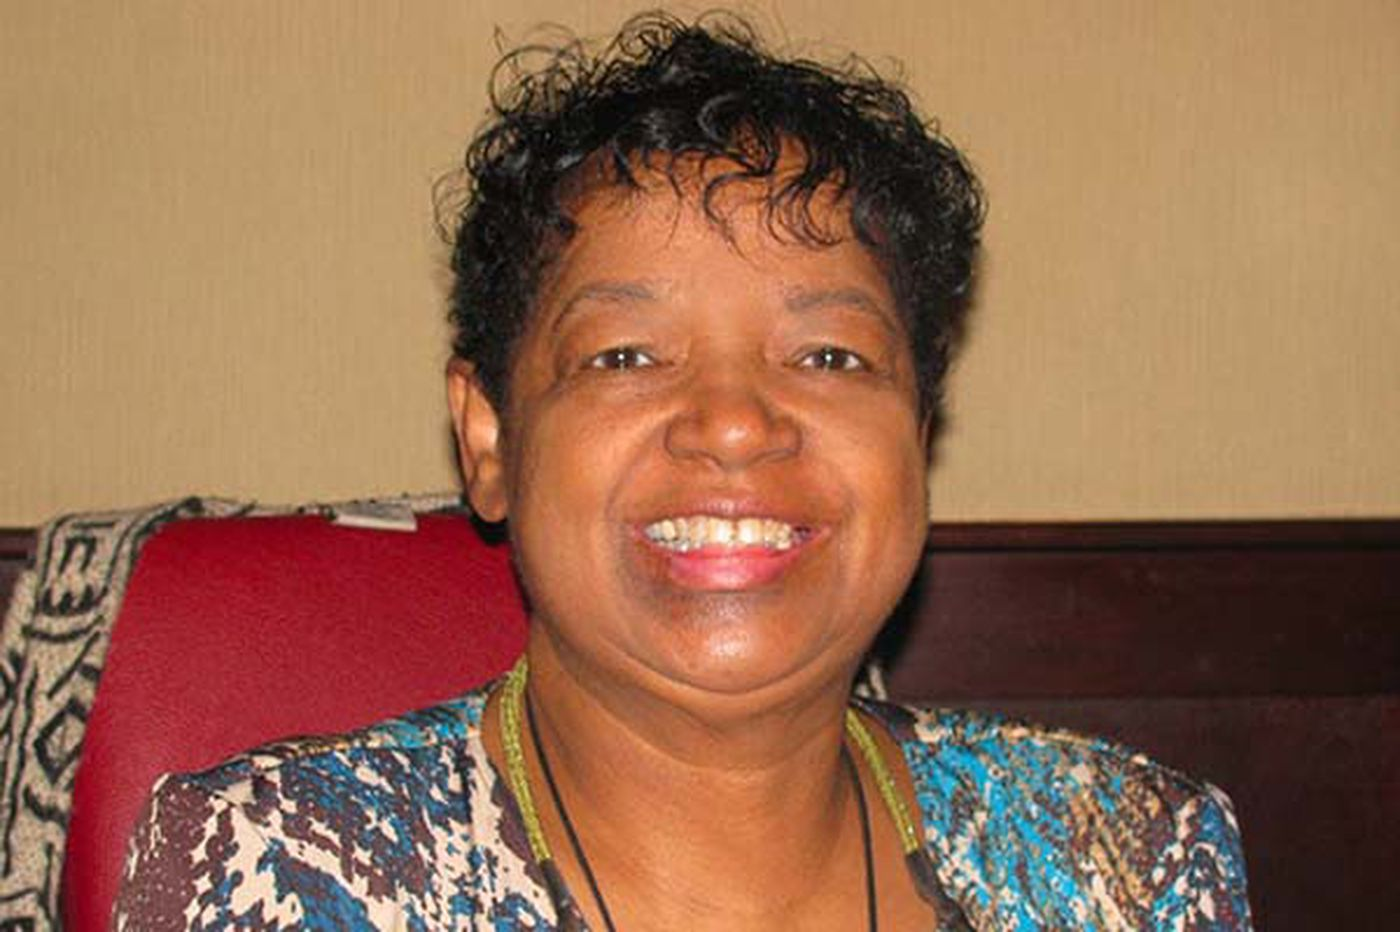 Dianne Marie Smith Partee, 73, educator, administrator